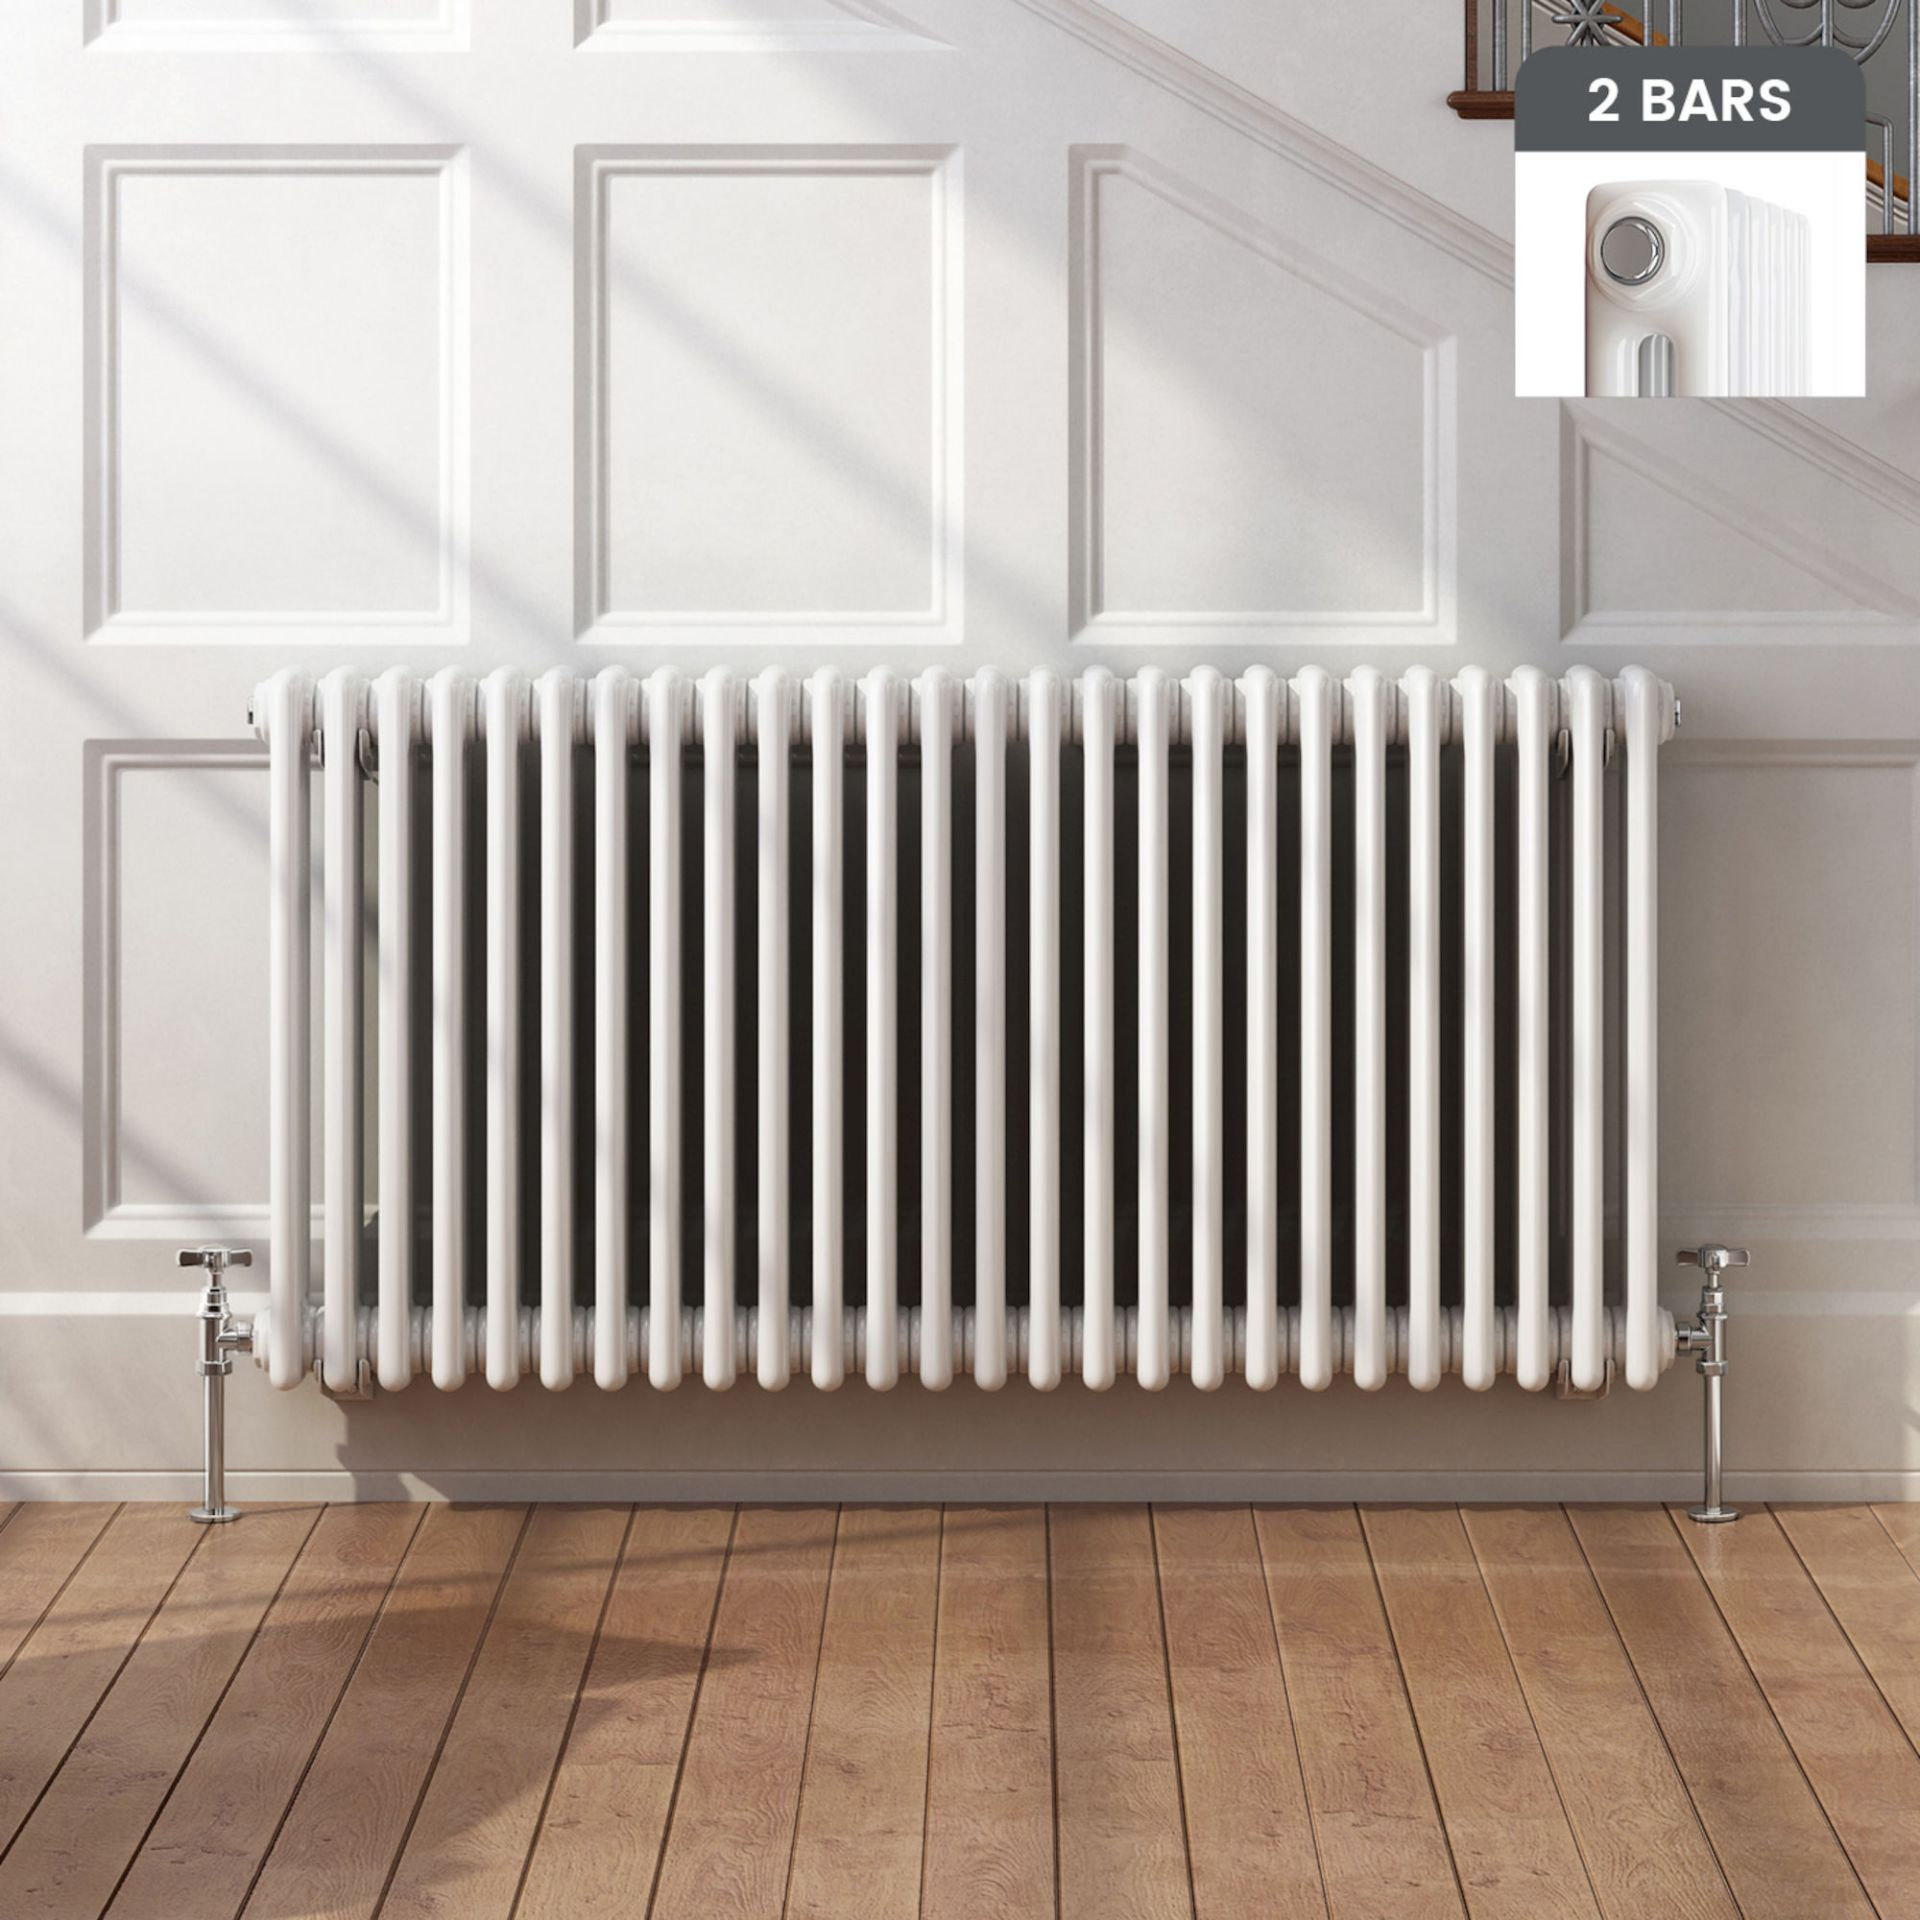 Lot 27 - (XX17) 600x1226mm Traditional White Double Panel Horizontal Column Radiator. RRP £541.99. For ...